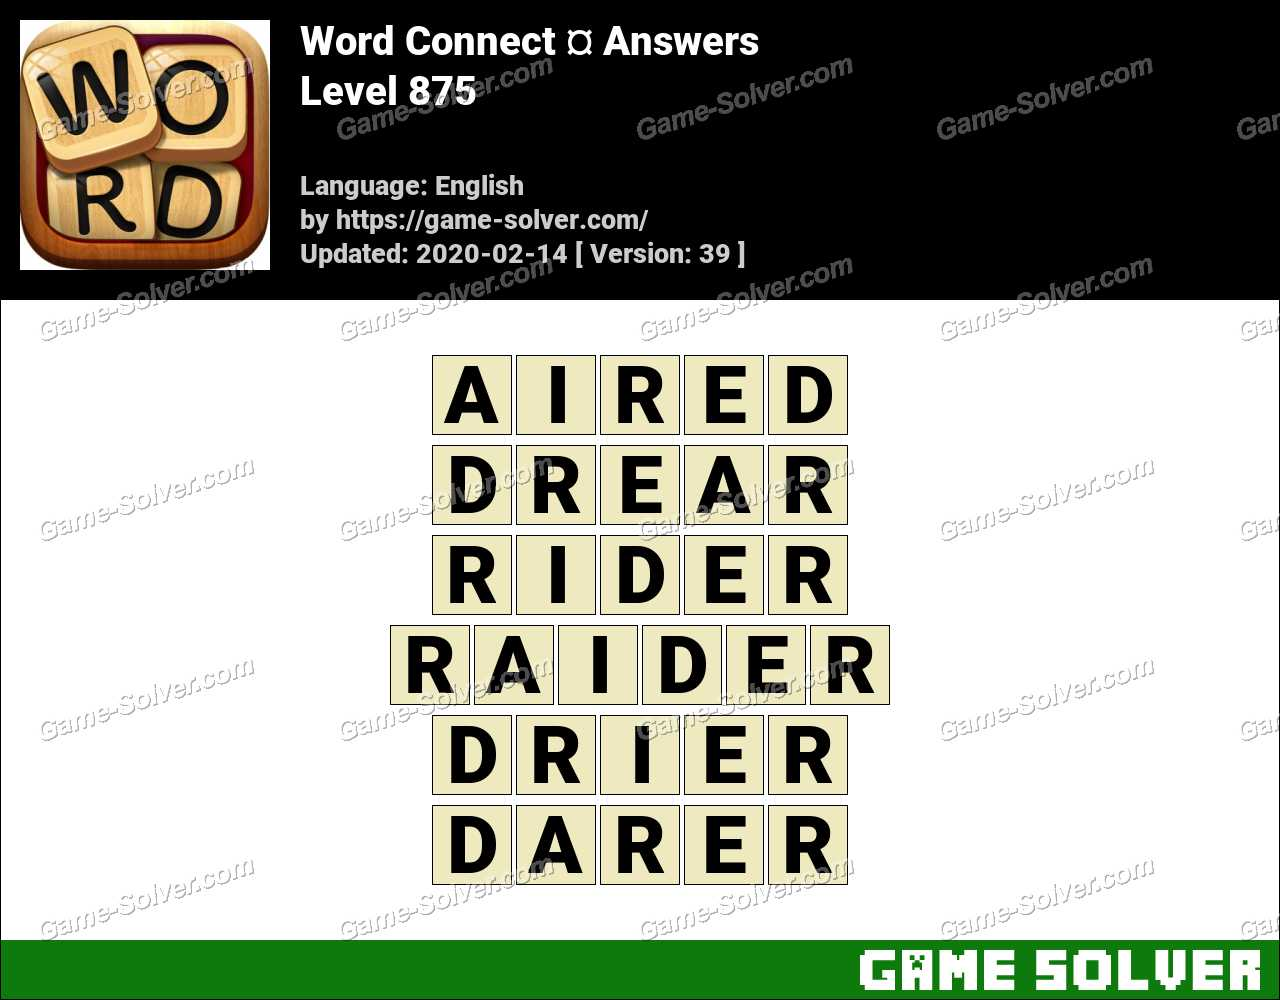 Word Connect Level 875 Answers